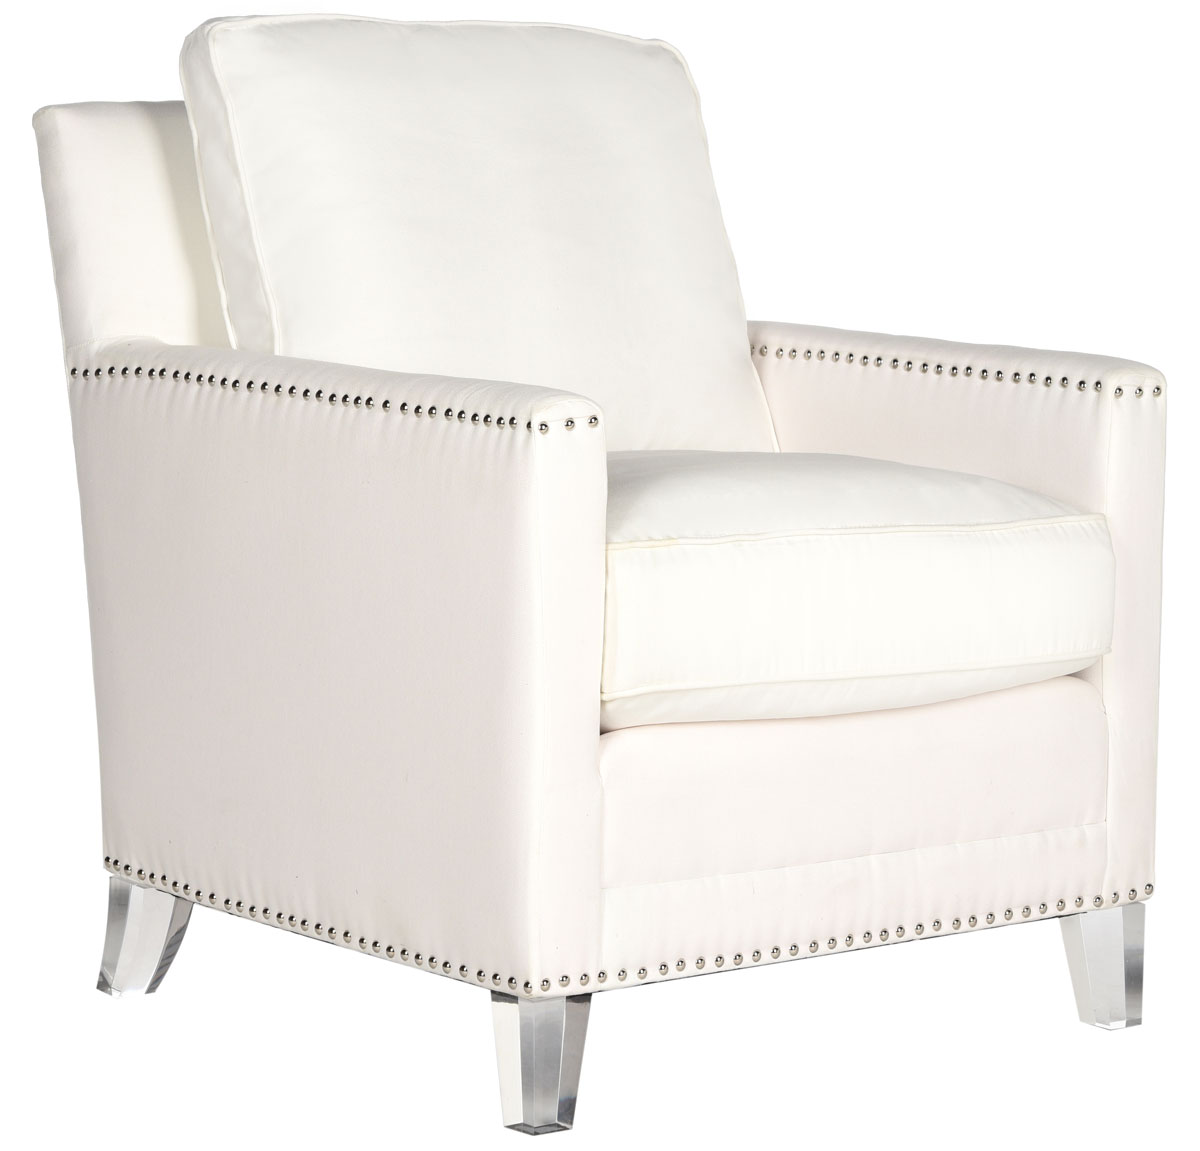 white club chairs master gym fitness chair mcr4213a accent furniture by safavieh hollywood glam tufted acrylic w silver nail heads design